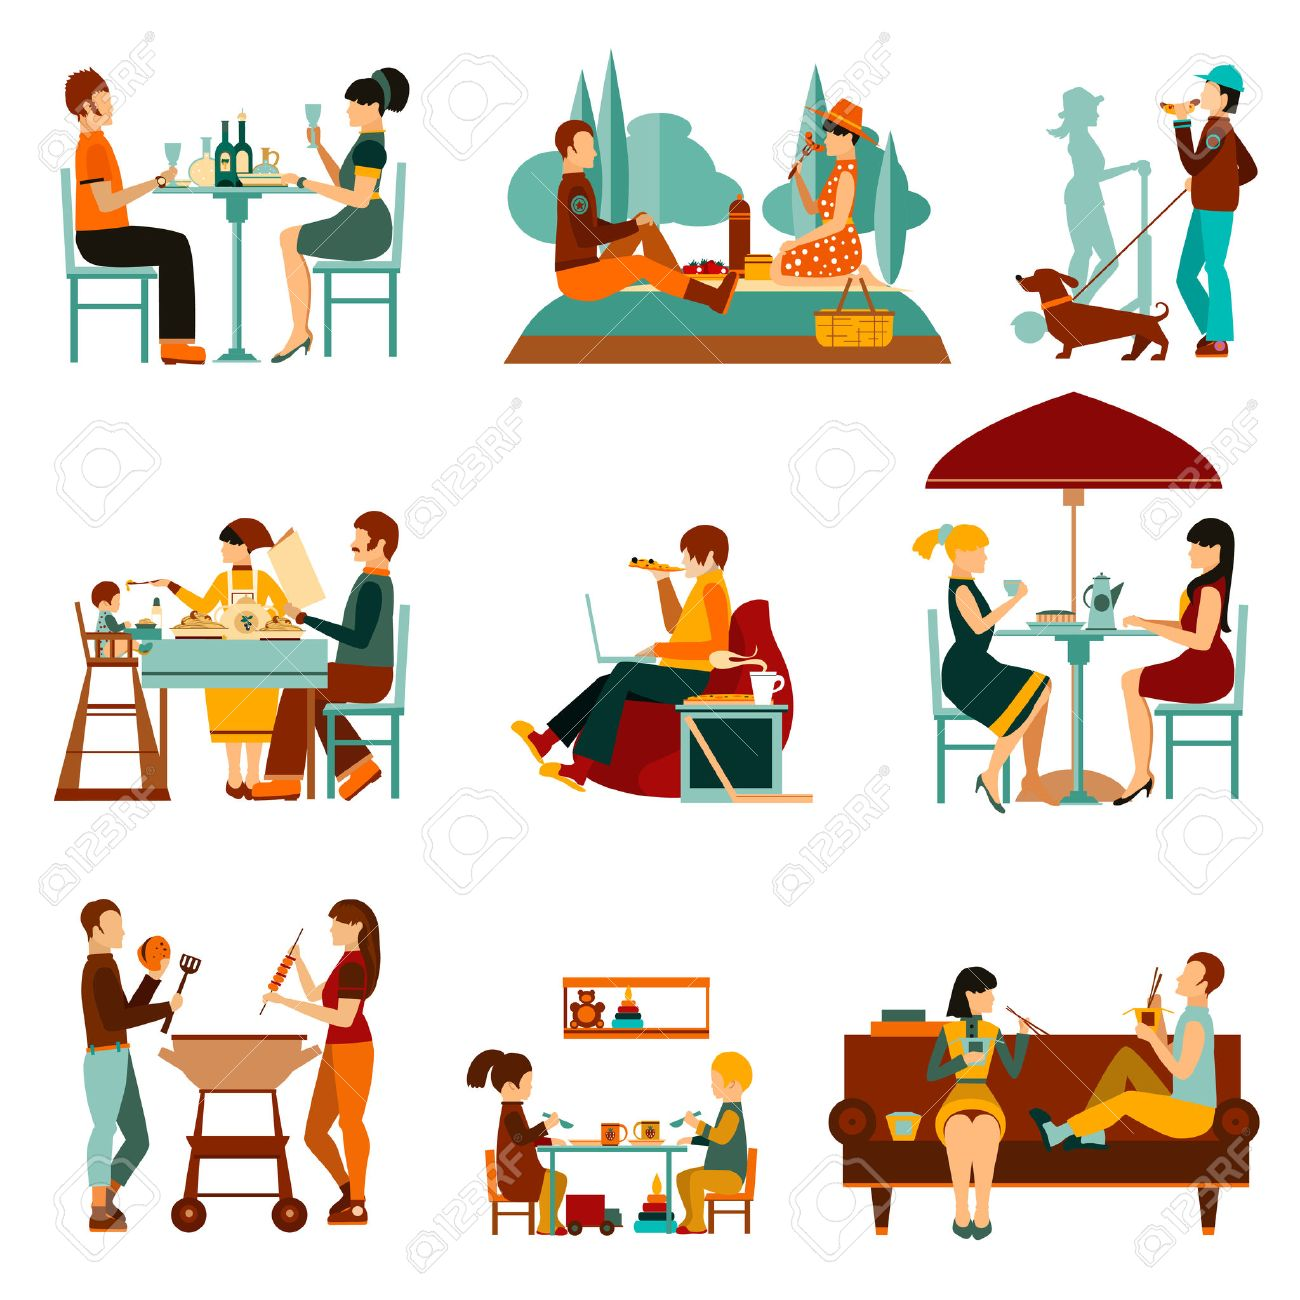 People eating out and an homes flat icons set isolated vector illustration Foto de archivo - 46499062